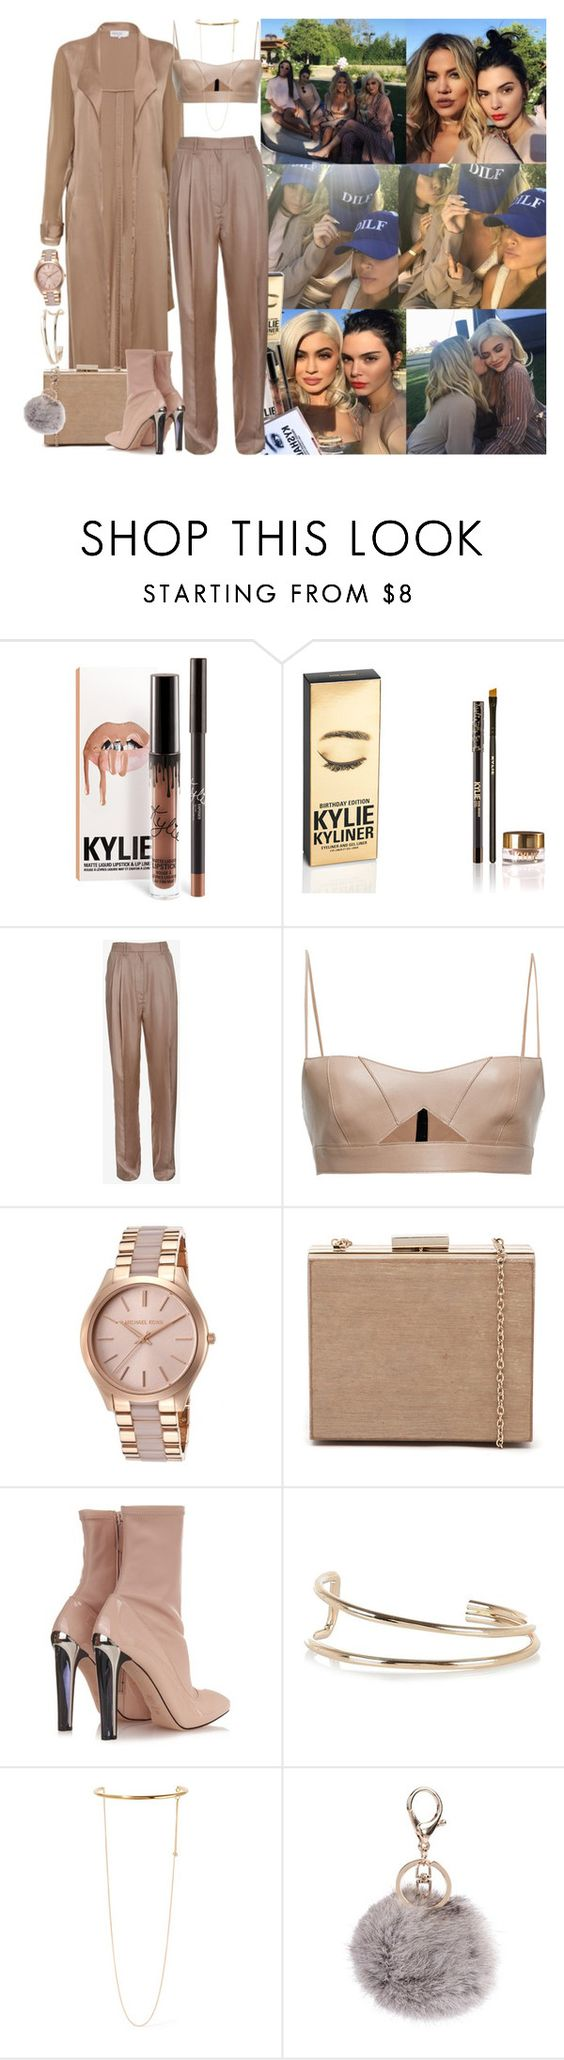 """Together with the family Kardashian-Jenner"" by valeria-angel ❤ liked on Polyvore featuring rag & bone, Salvatore Ferragamo, Michael Kors, Alexander McQueen, River Island, STELLA McCARTNEY, Armitage Avenue, SPINELLI KILCOLLIN, kimkardashian and khloekardashian"